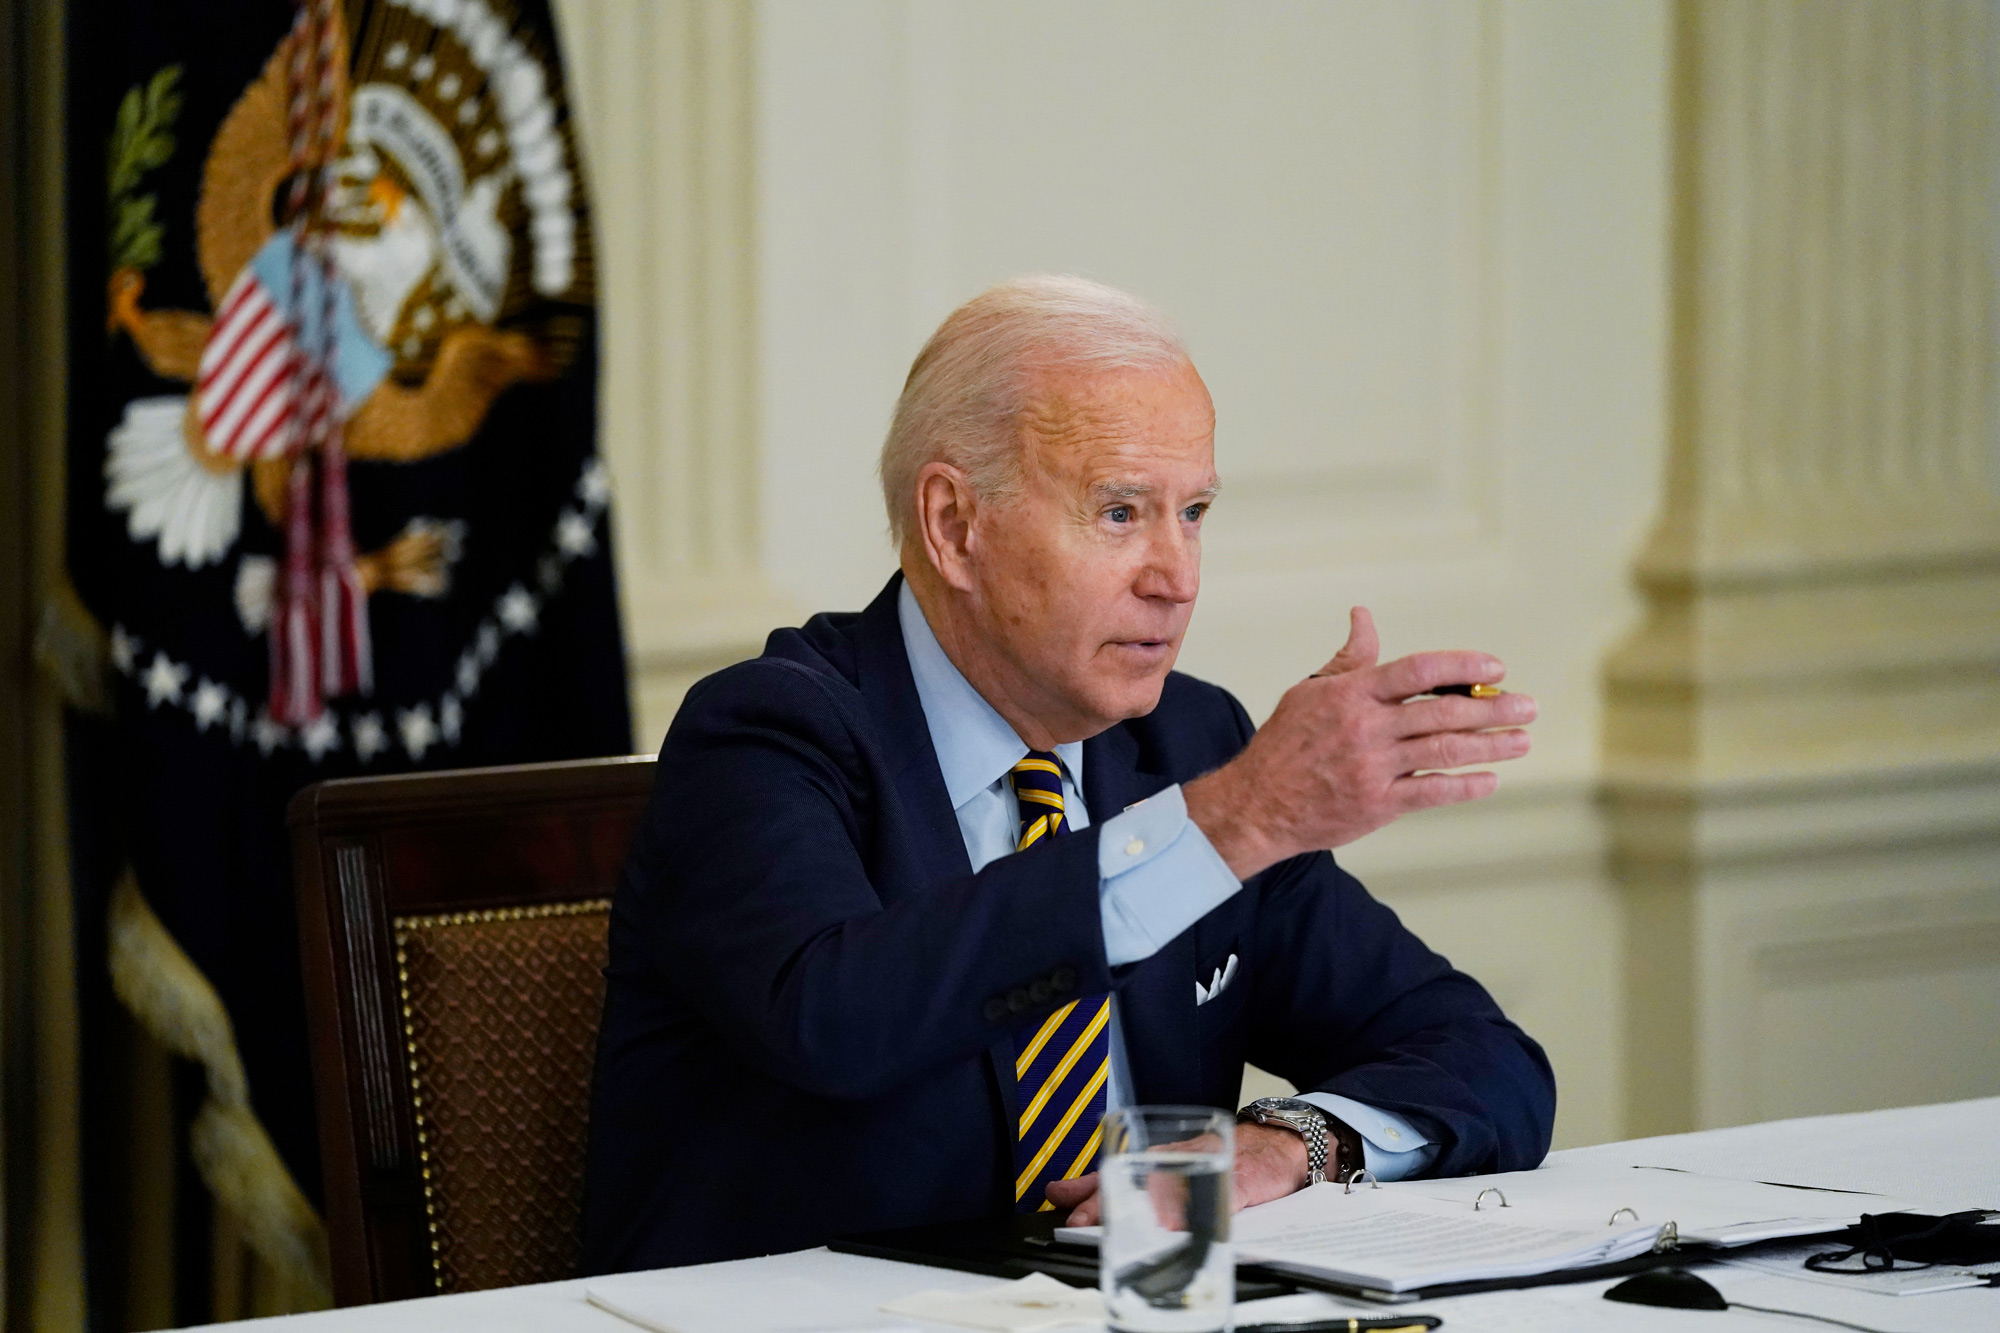 President Joe Biden speaks during a virtual meeting from the State Dining Room of the White House on March 12 in Washington, DC.